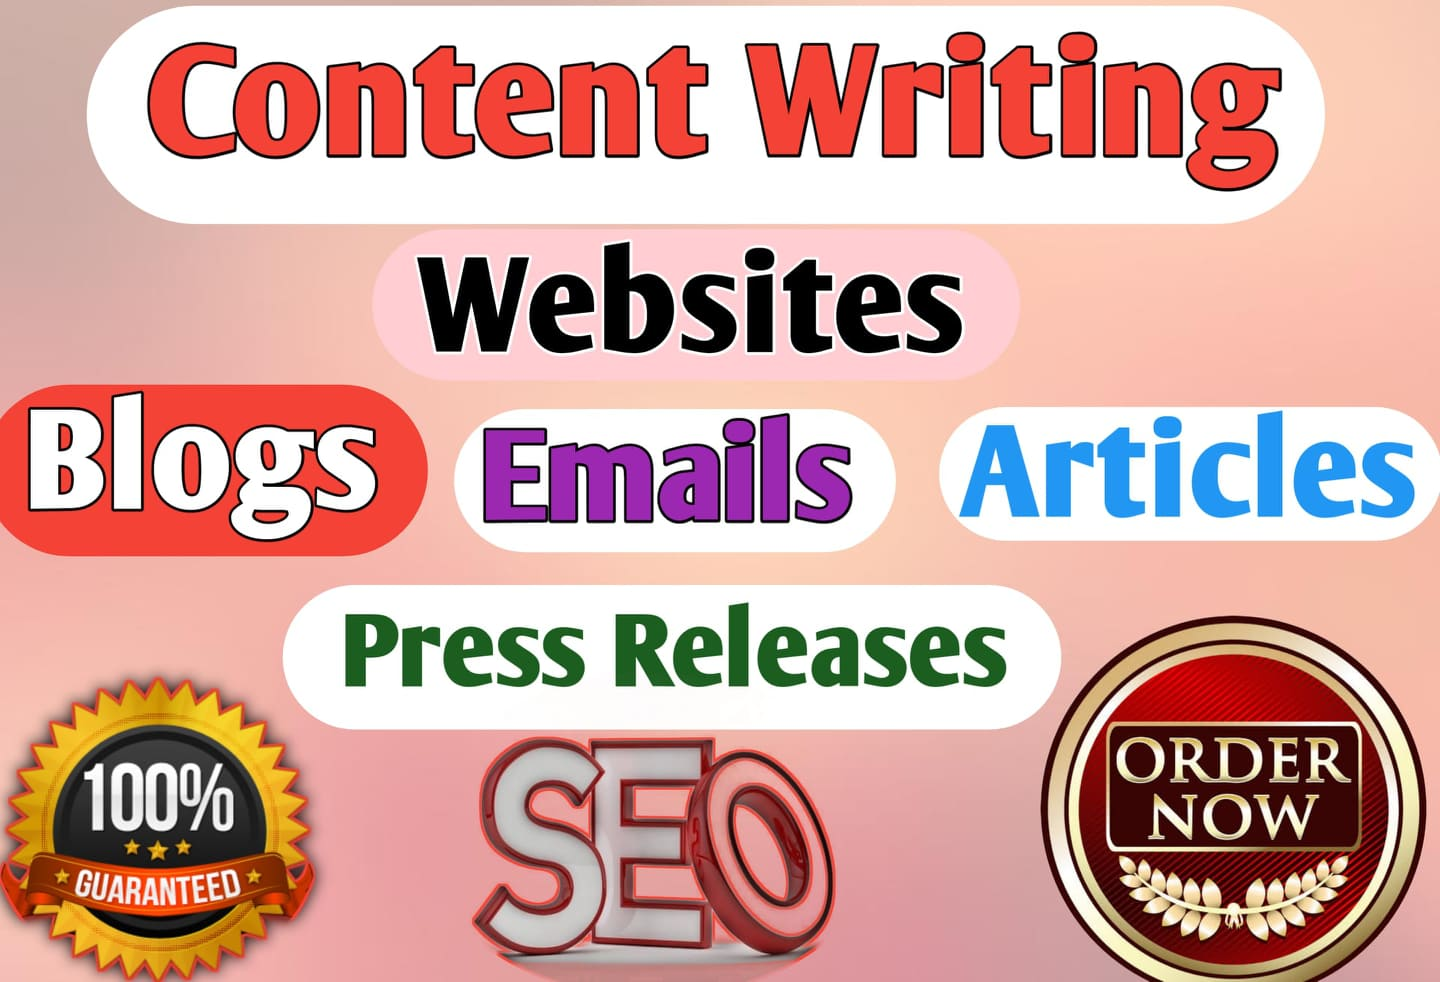 I will write 500 words of quality content for your website,  blog,  and digital marketing